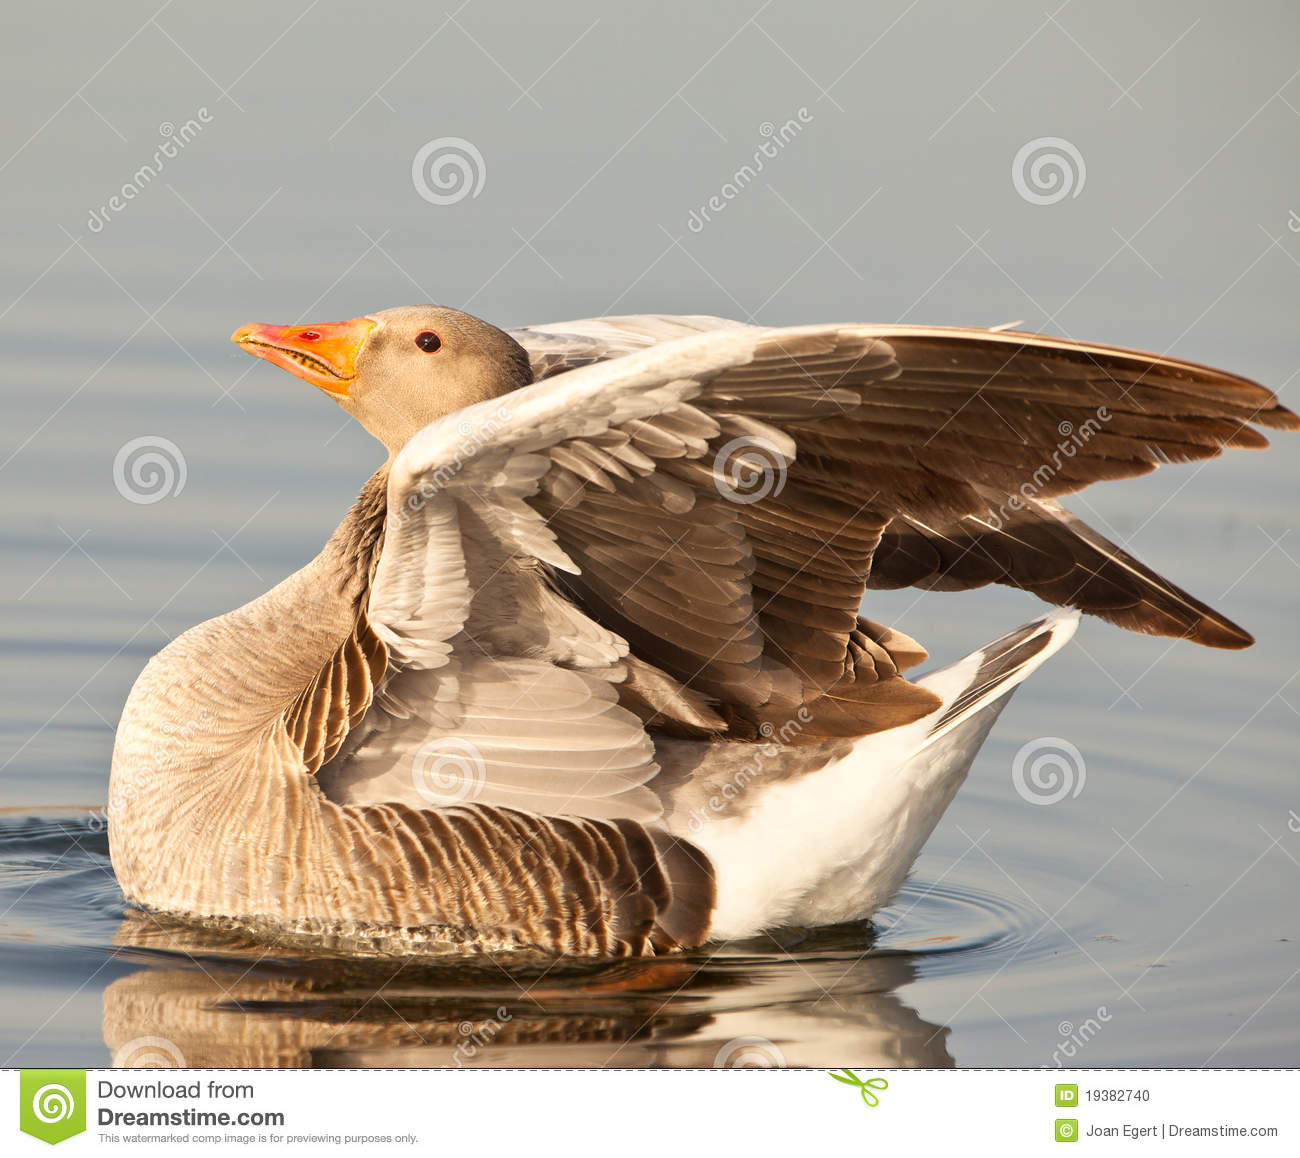 A Greylag Goose in the evening sun